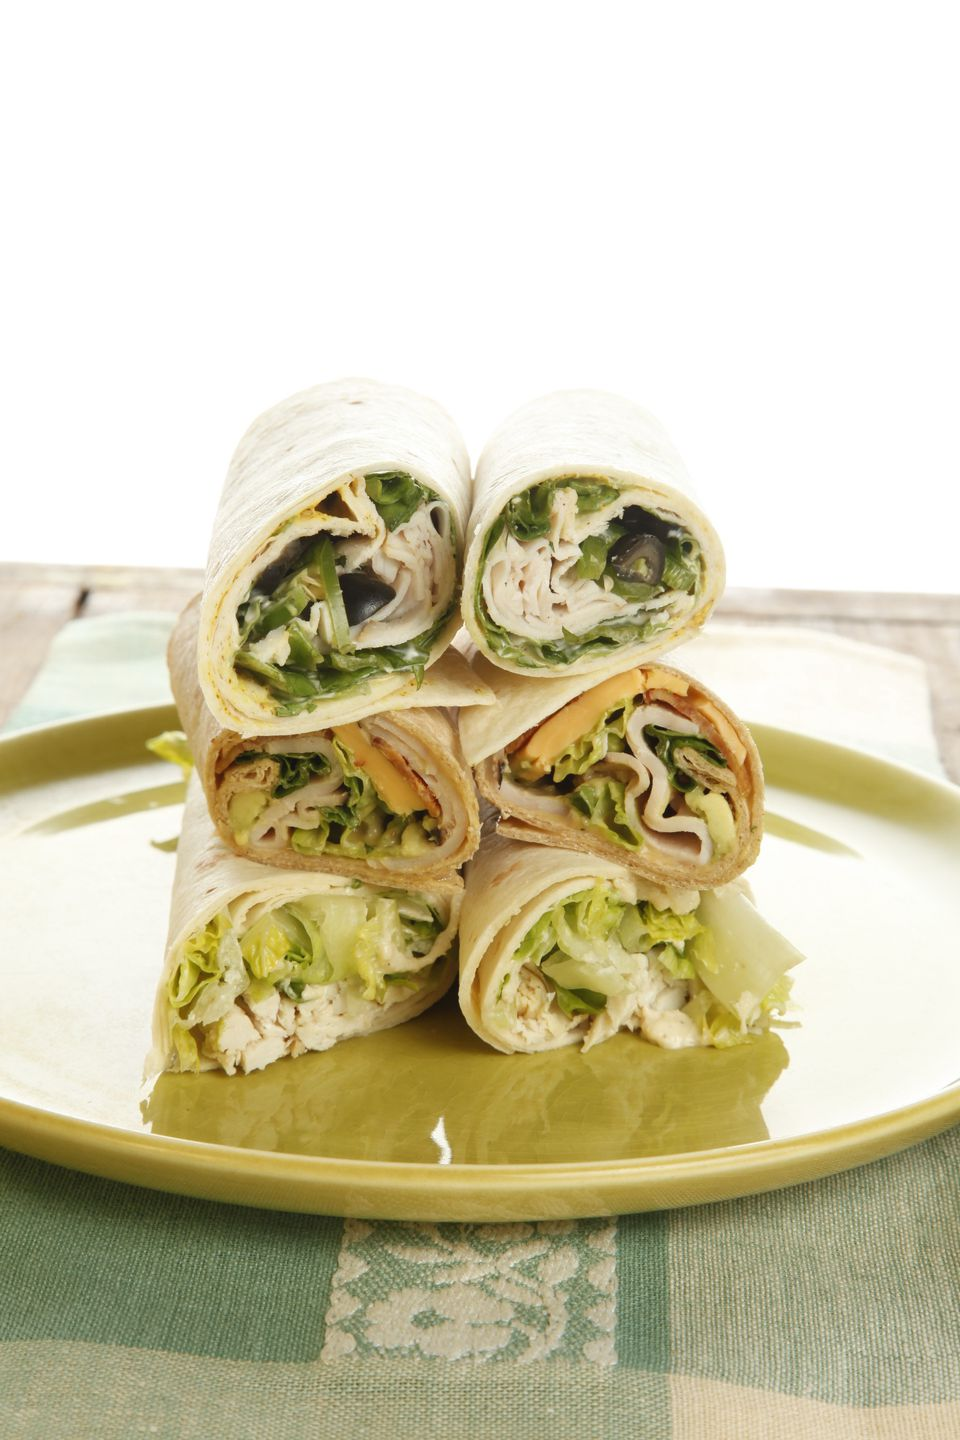 Build Your Own Wrap Lunch